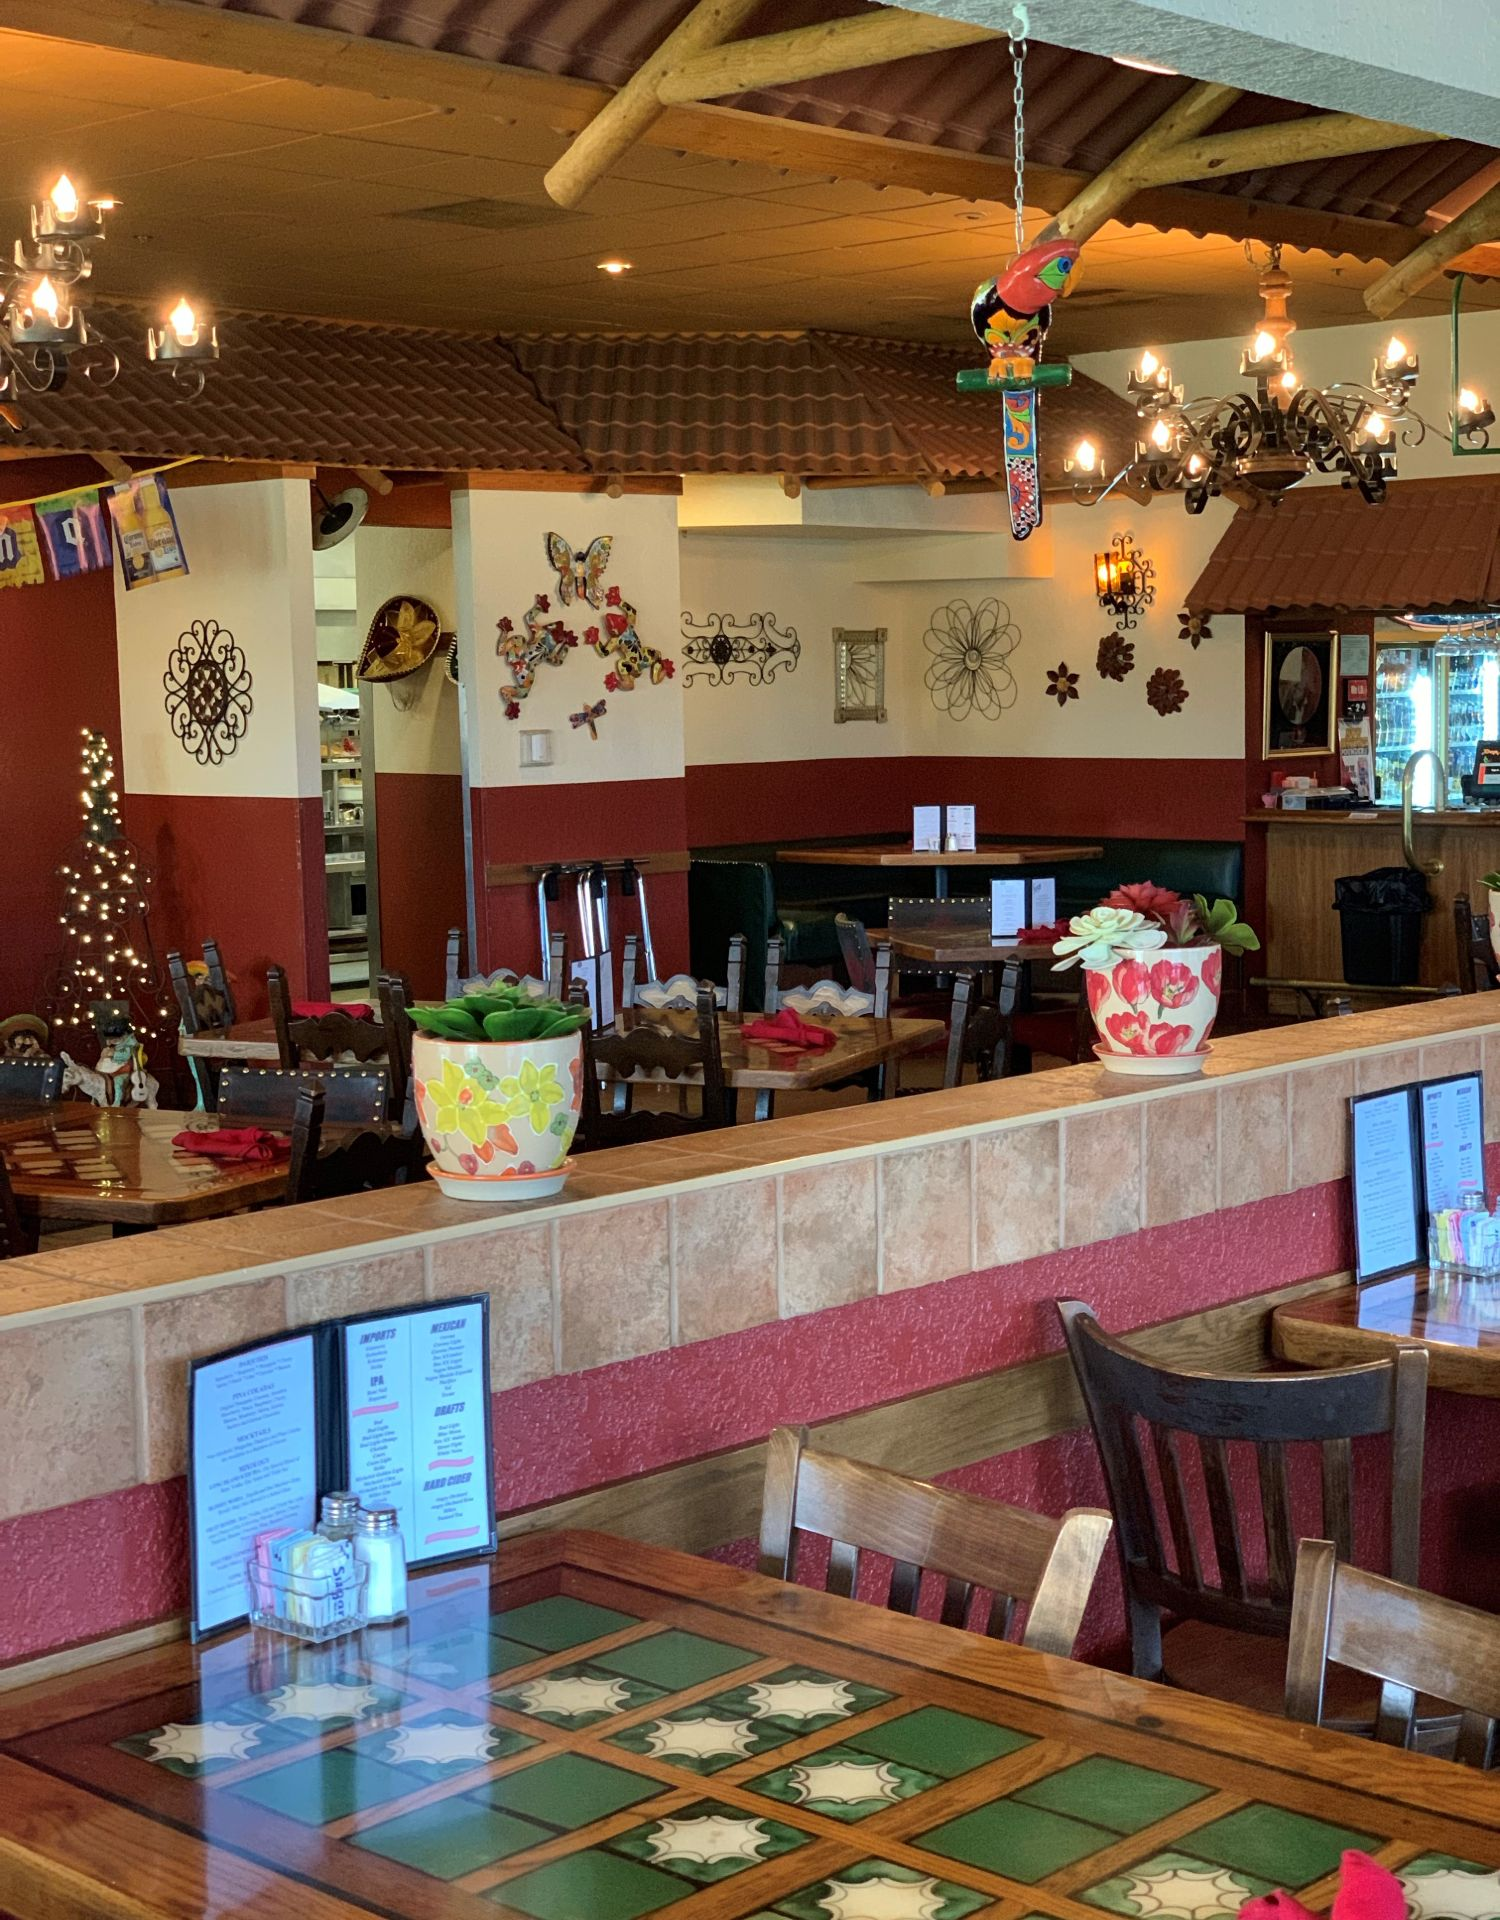 Interior dining area with Mexican-themed decorations